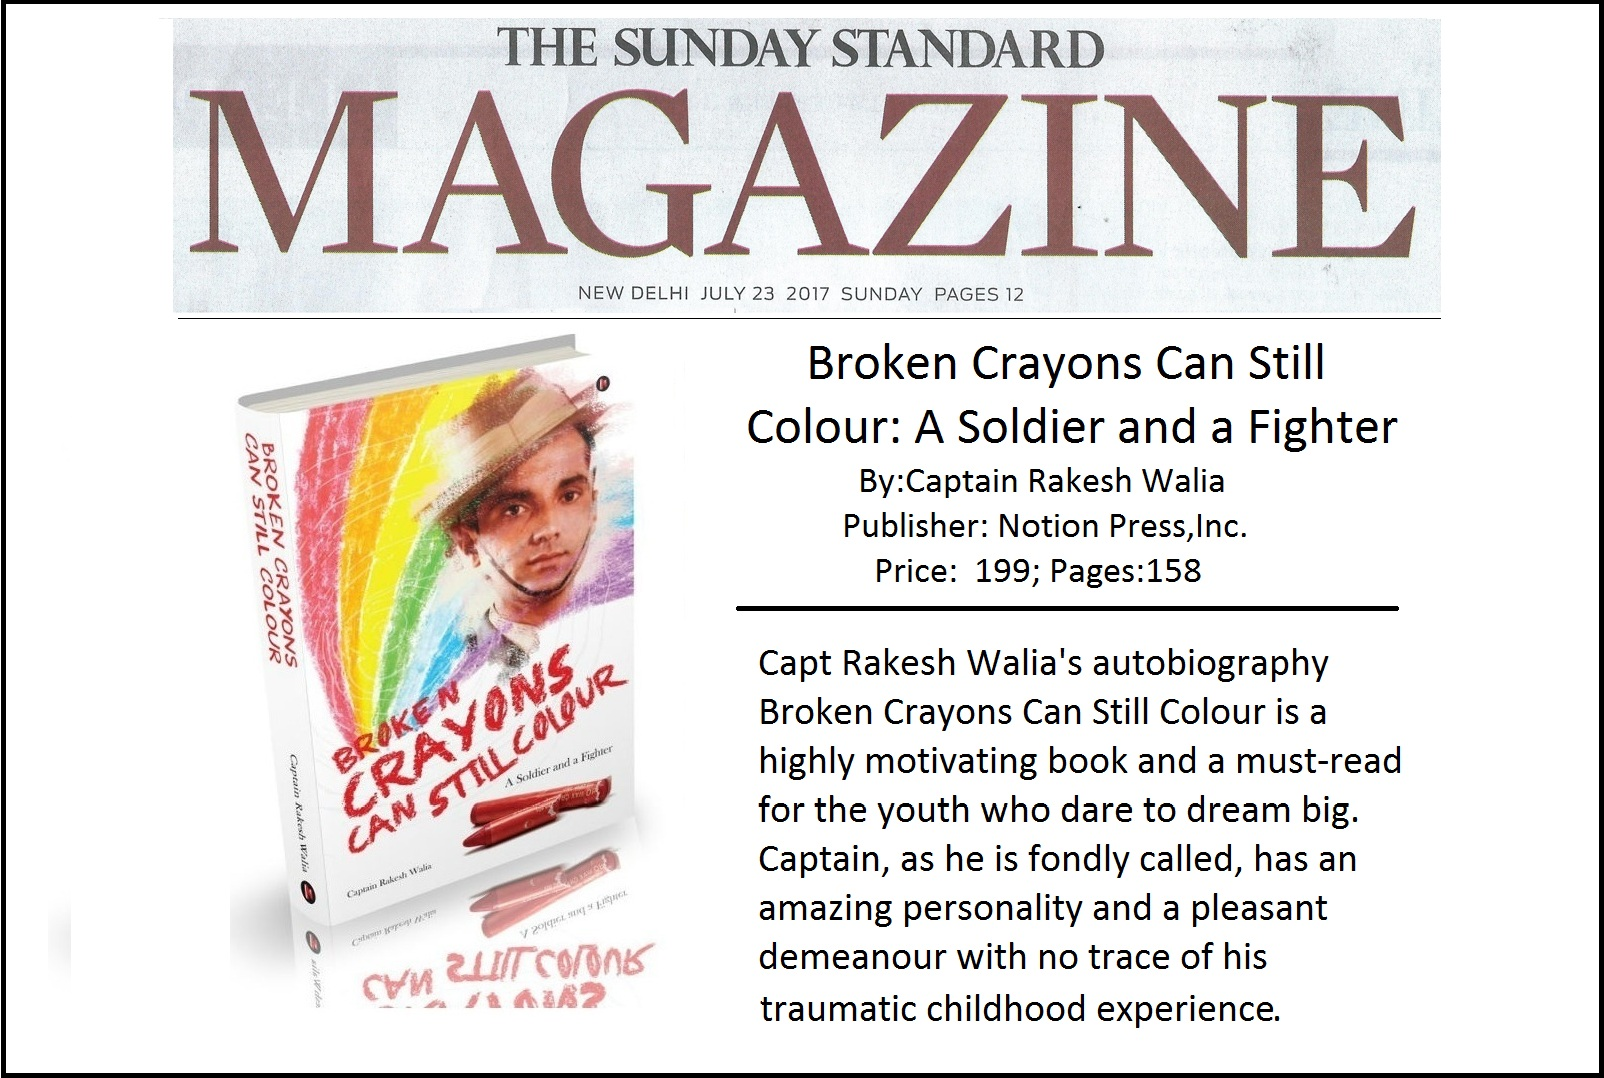 The Sunday Standard Magazine July 30th